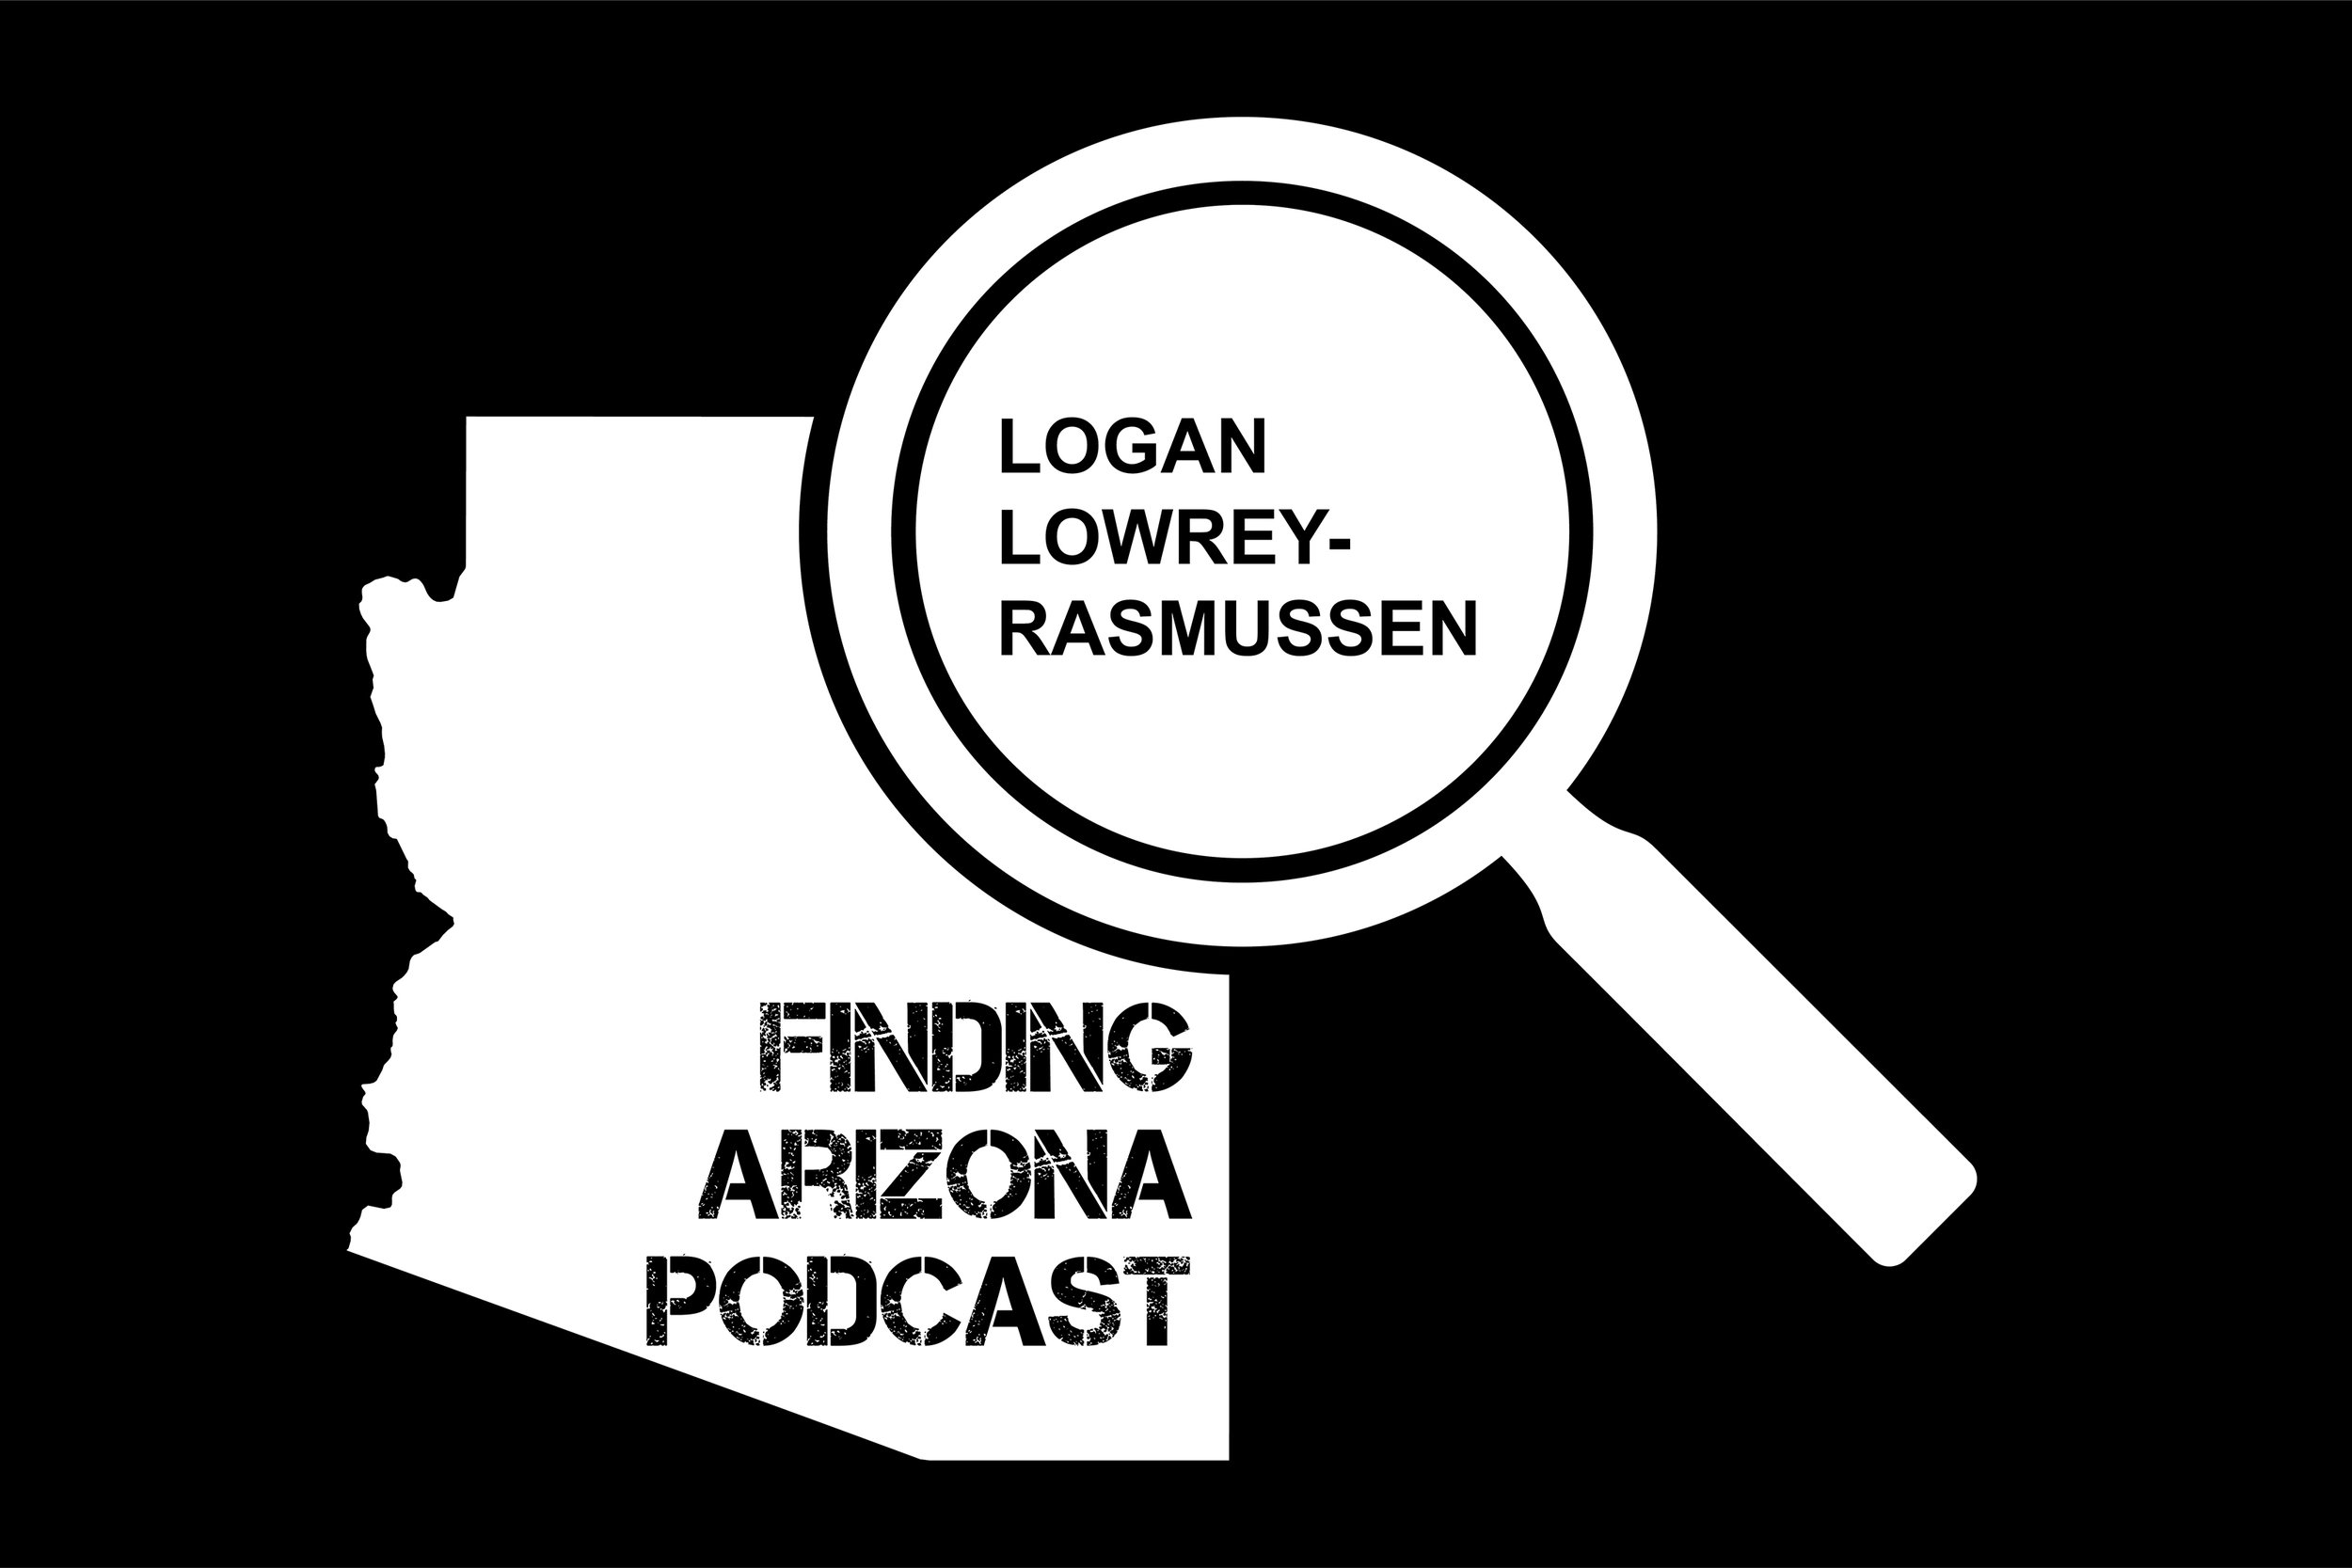 PodCastLogo-LOGAN-large.jpg